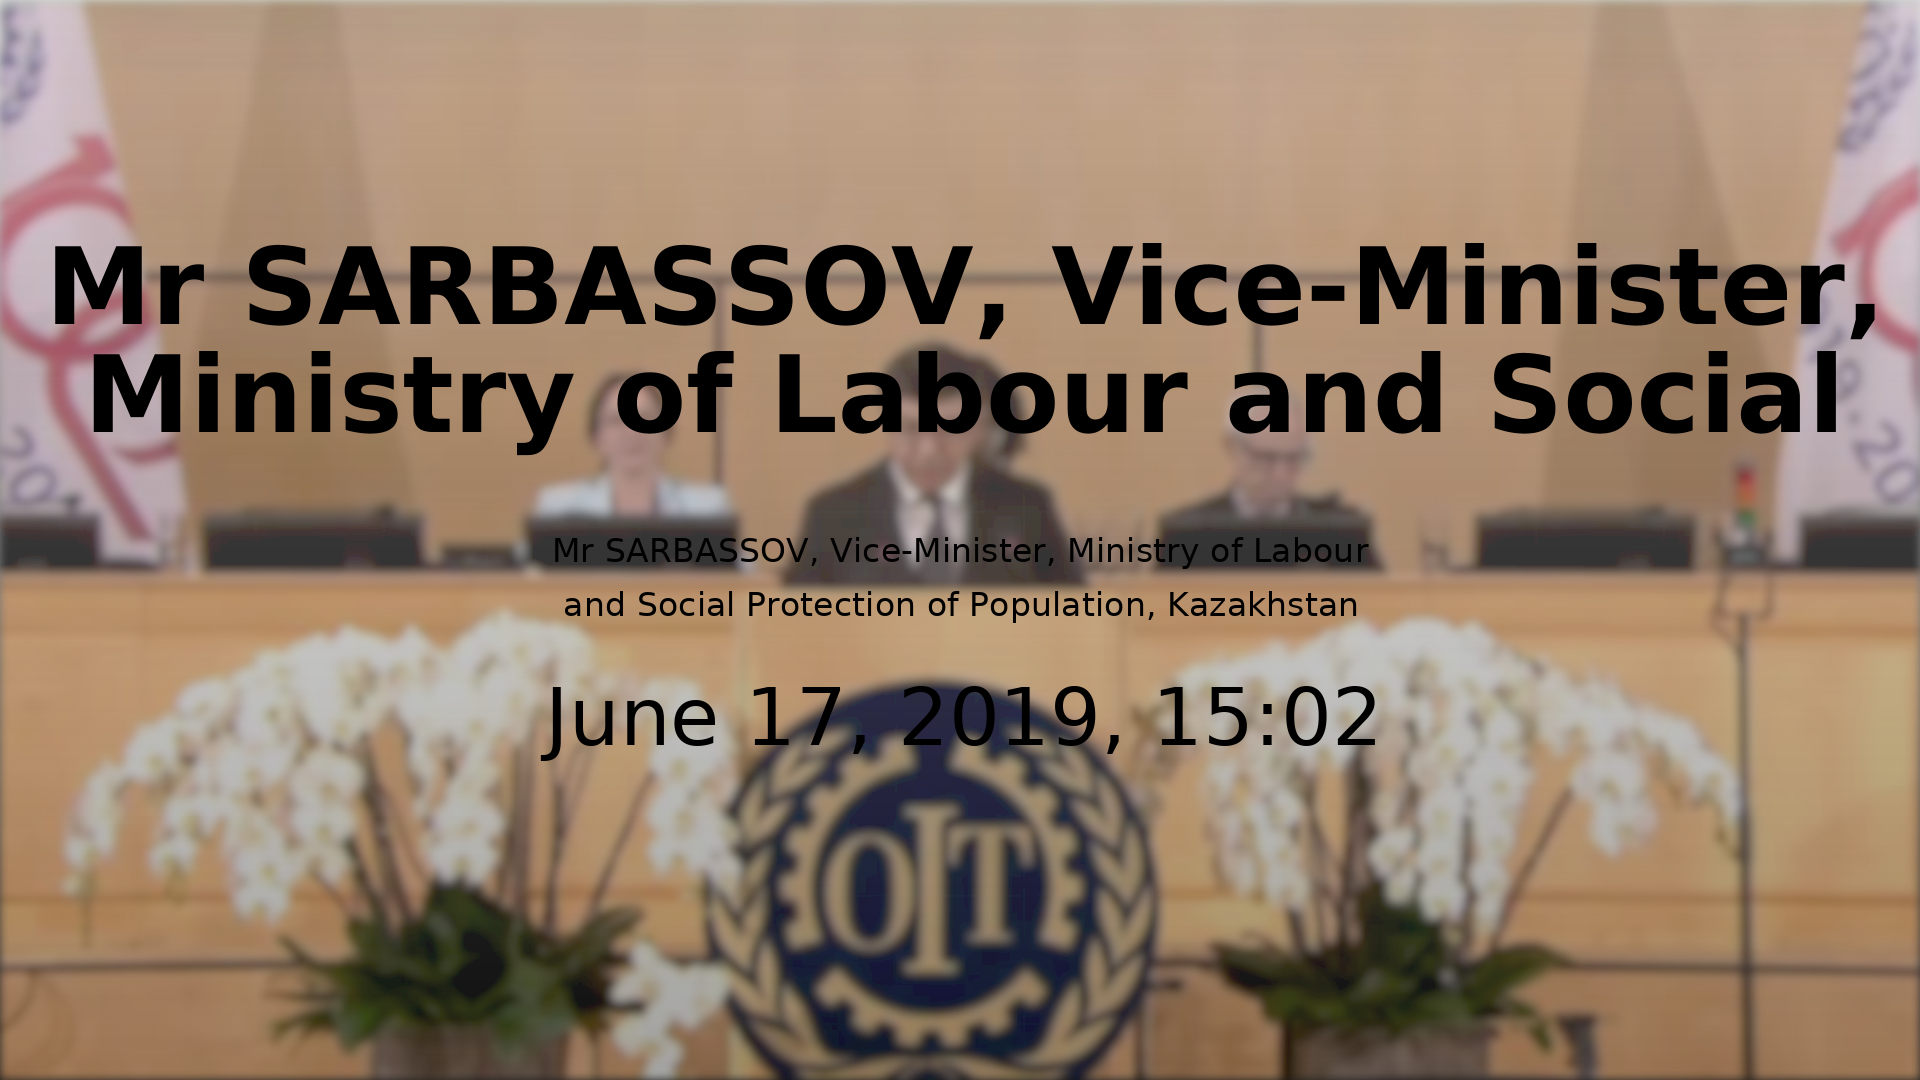 Mr SARBASSOV, Vice-Minister, Ministry of Labour and Social